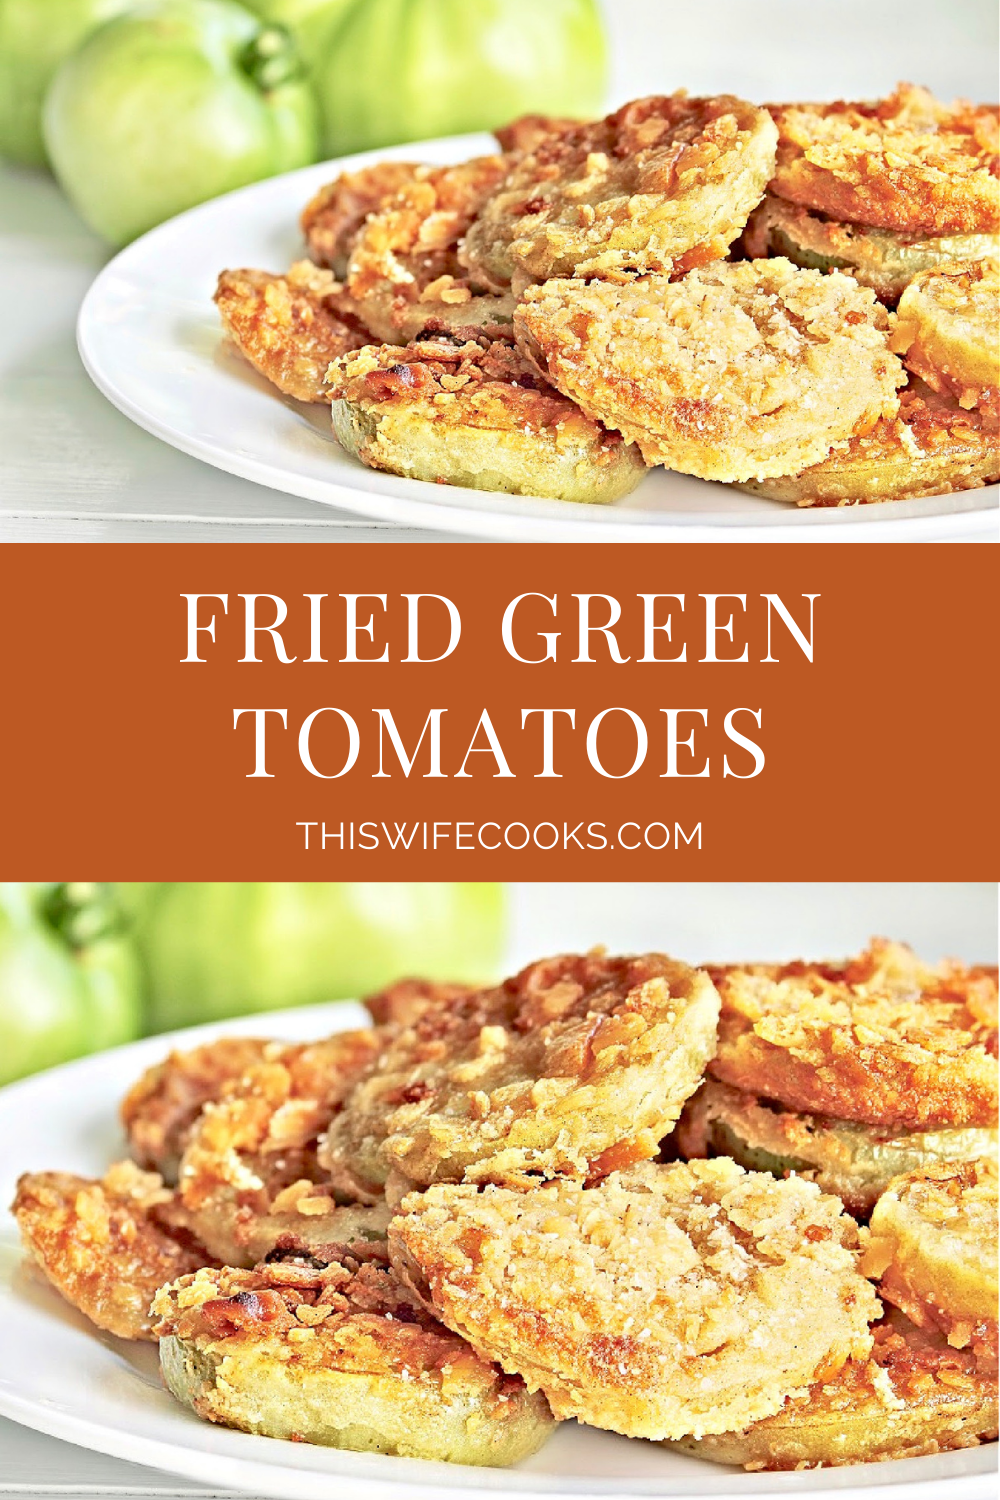 Fried Green Tomatoes ~The Southern clasic made with all plant-based ingredients! Fresh and pleasantly tart green tomatoes are batter-coated and pan-fried until soft on the inside and perfectly crispy on the outside. Cajun seasoning adds a Louisiana-style kick!  via @thiswifecooks